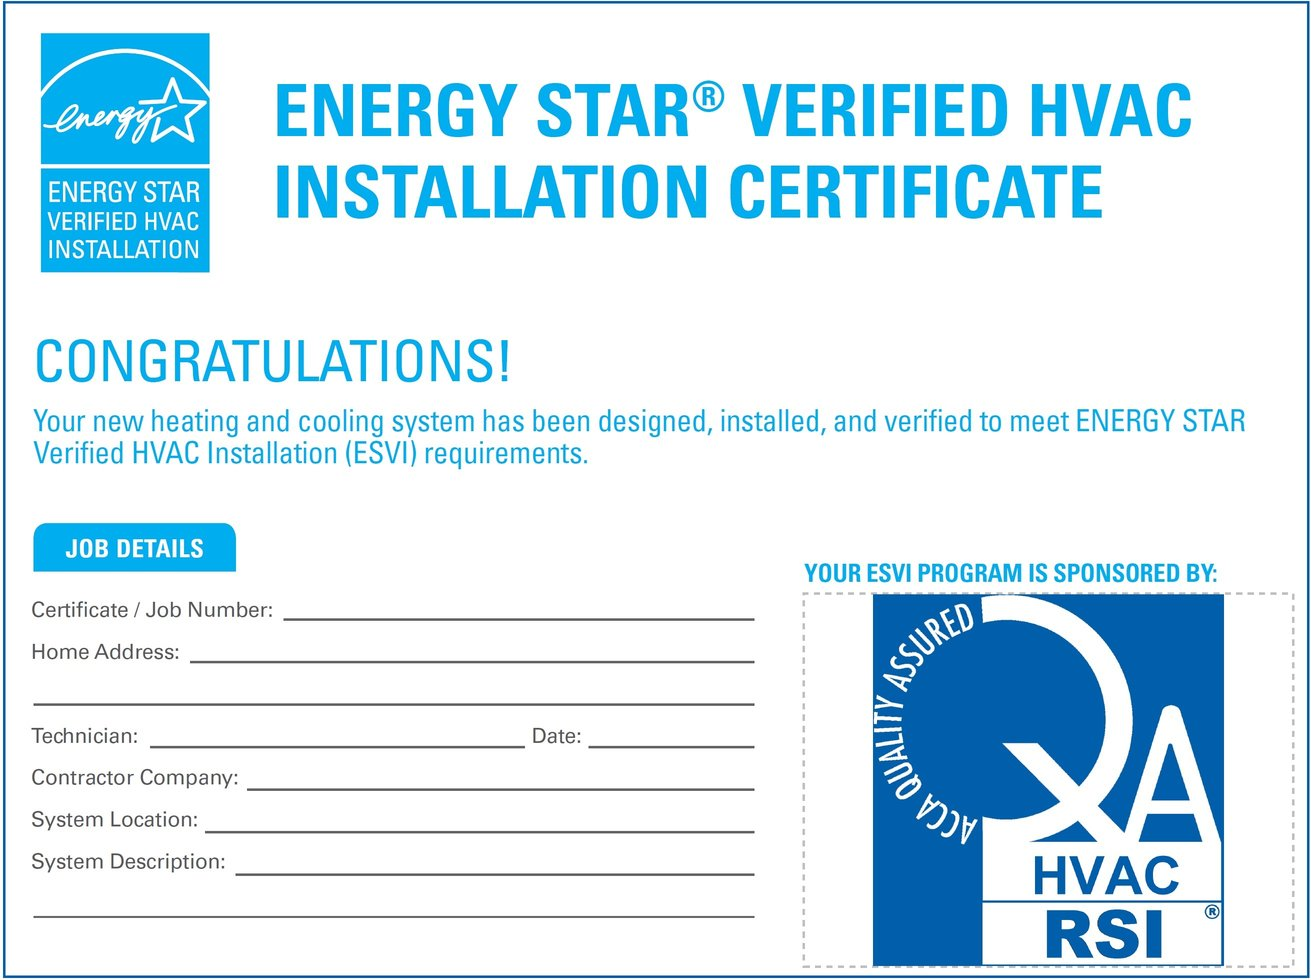 Existing homes program acca the energy star verified hvac installation esvi certificate stands on that brand recognition and adds xflitez Choice Image